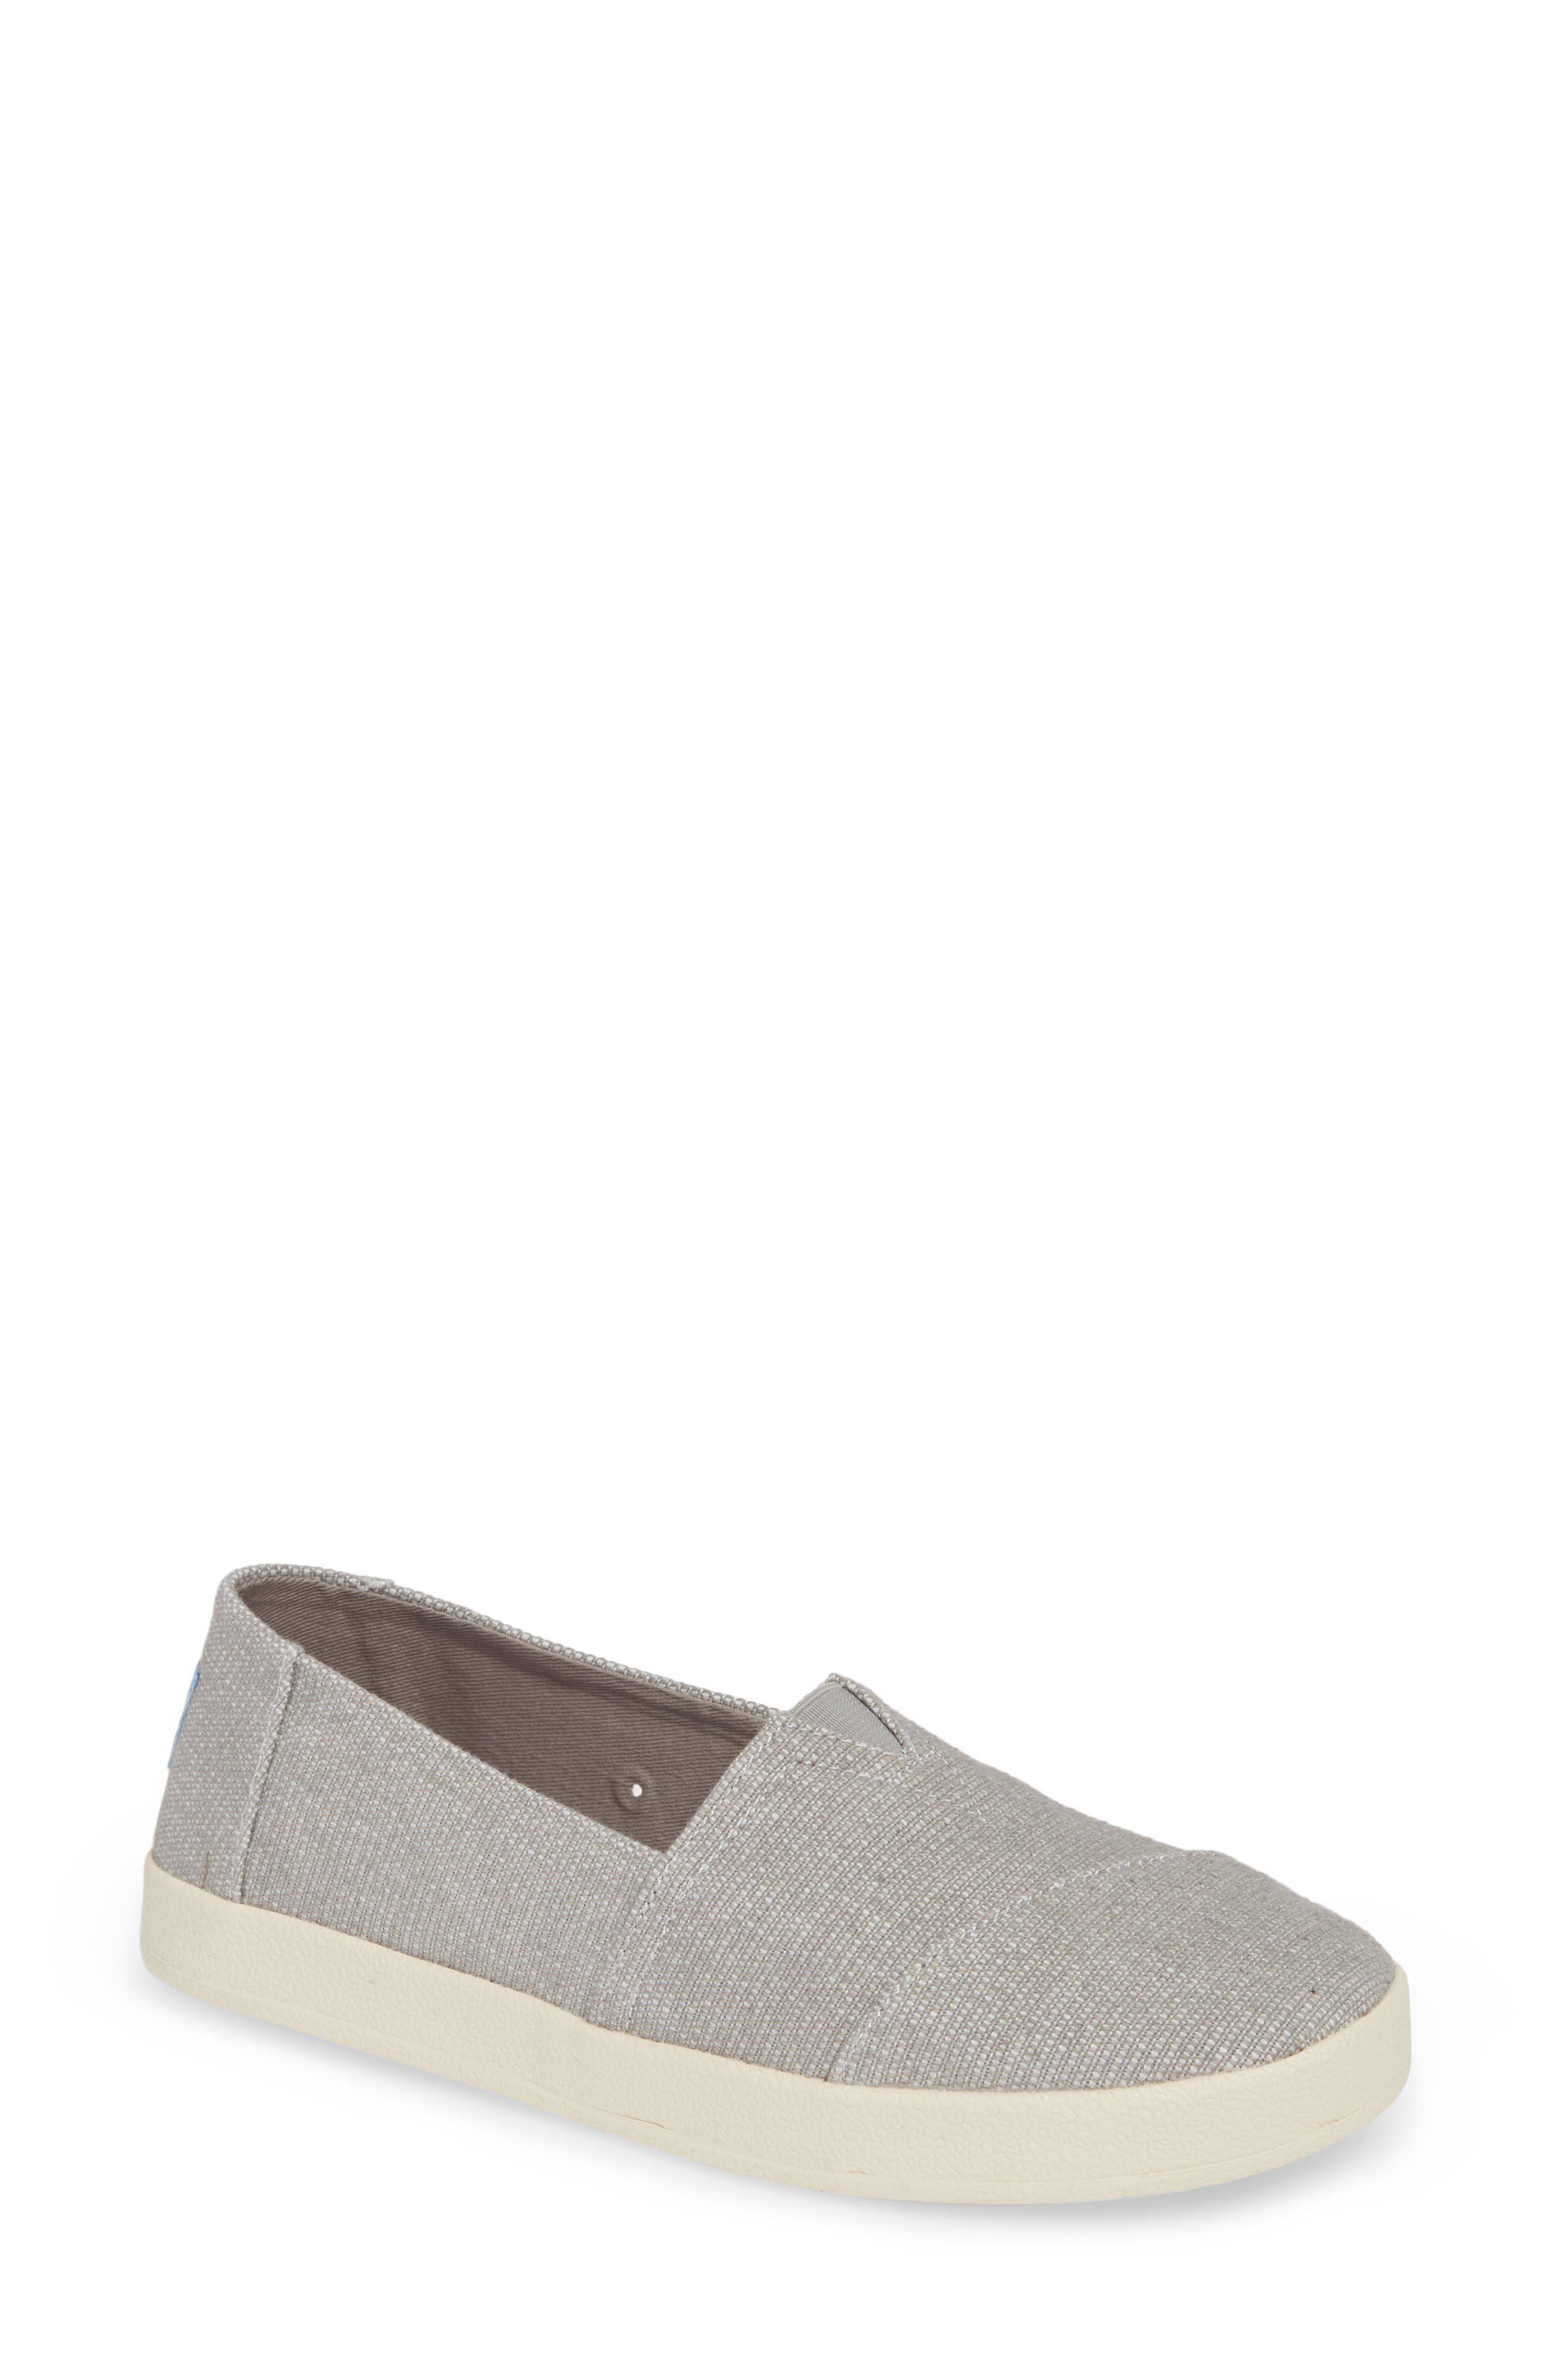 TOMS Avalon Slip-On Sneaker, Main, color, DRIZZLE GREY CANVAS